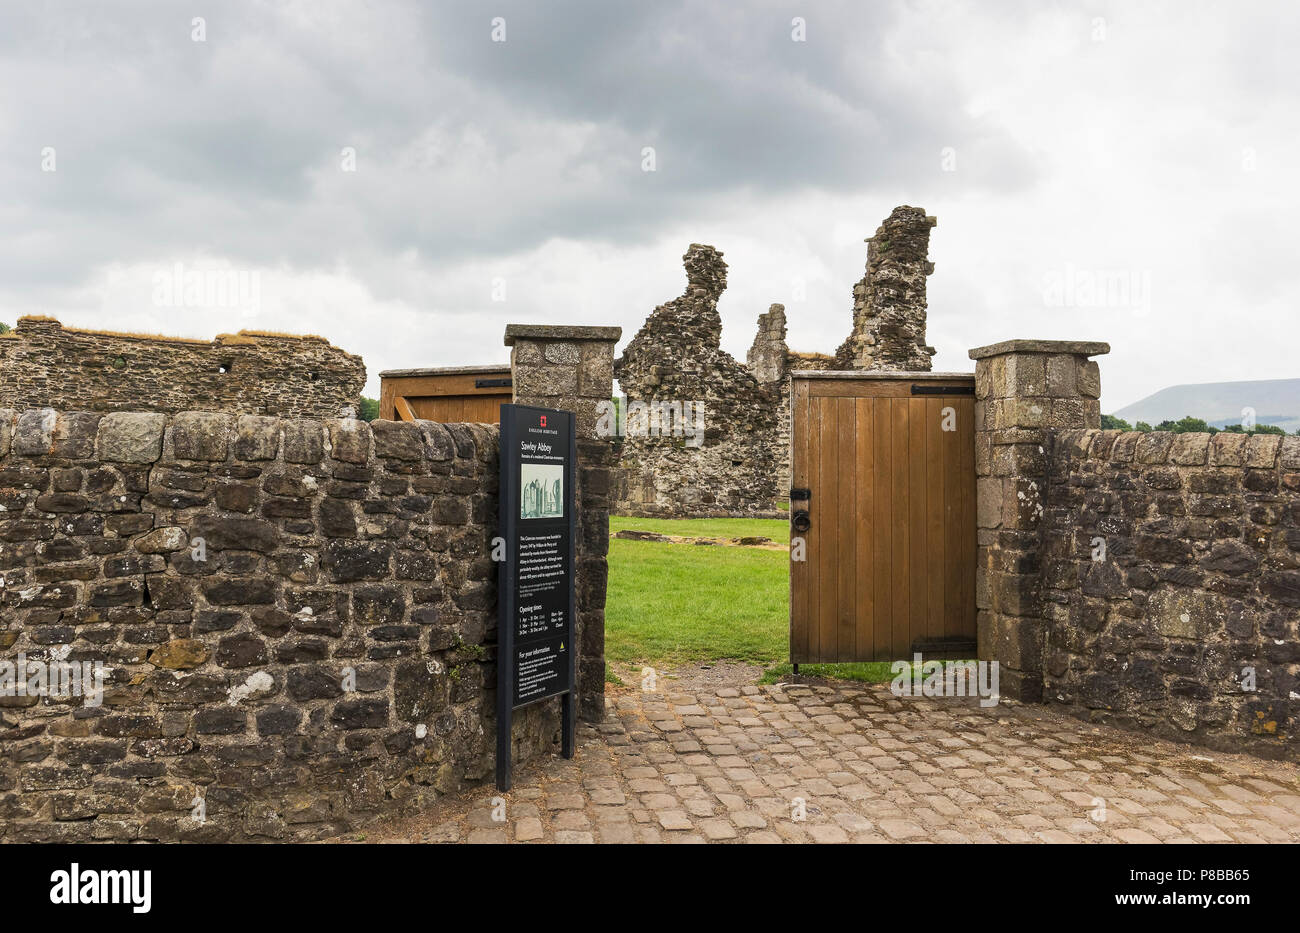 Entrance to the remains of Cistercian Sawley Abbey in the village of Clitheroe in lancashire, UK founded around 1148. - Stock Image